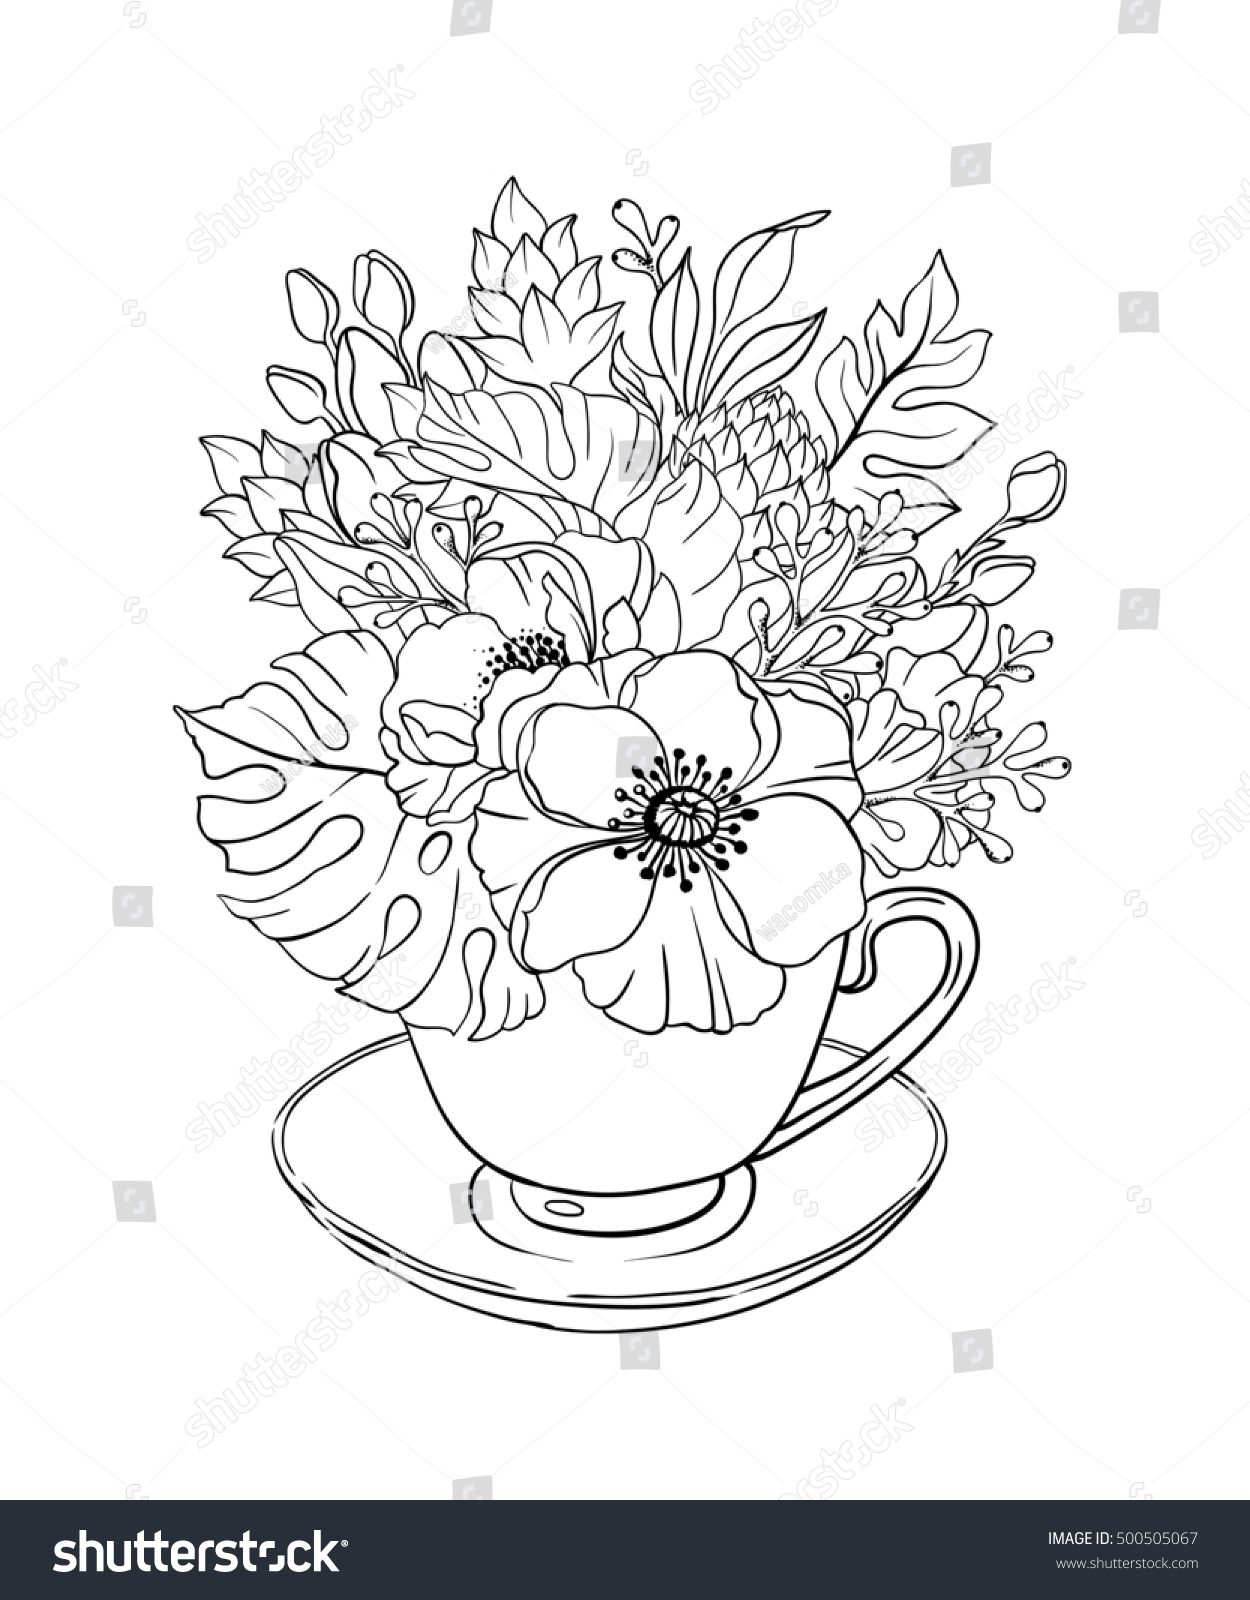 Royalty Free Stock Illustration of Doodle Illustration Coloring Page ...